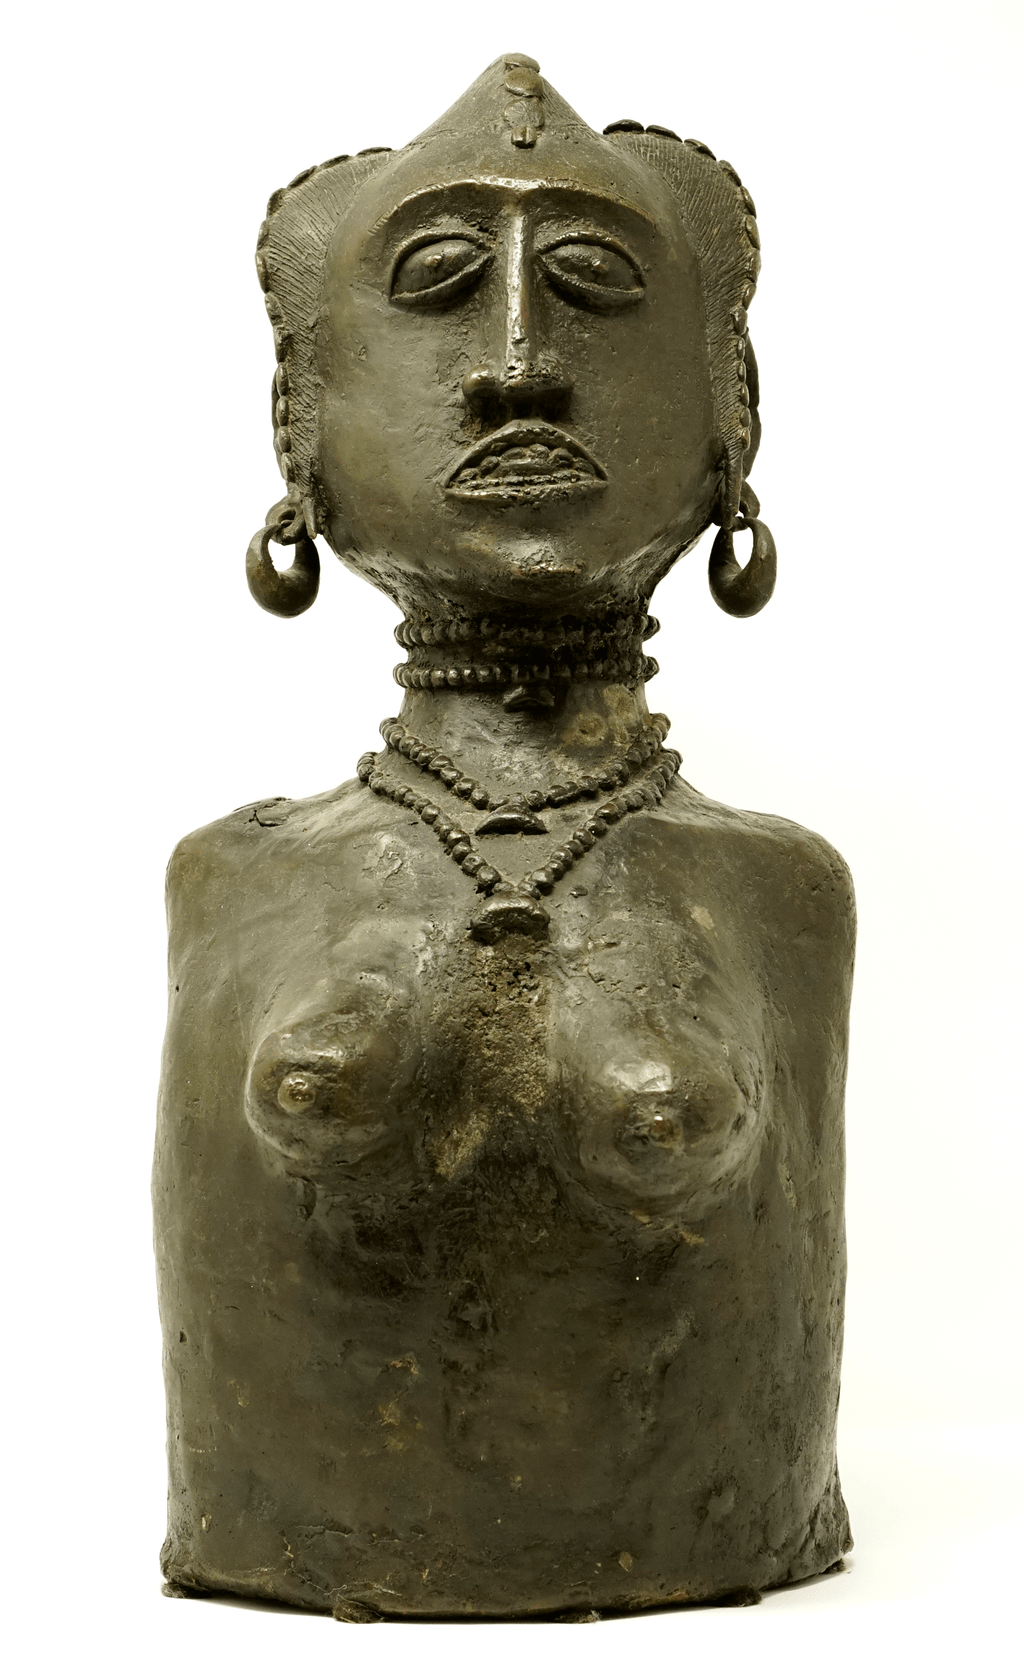 Early 20th century female bronze sculpture from Mali